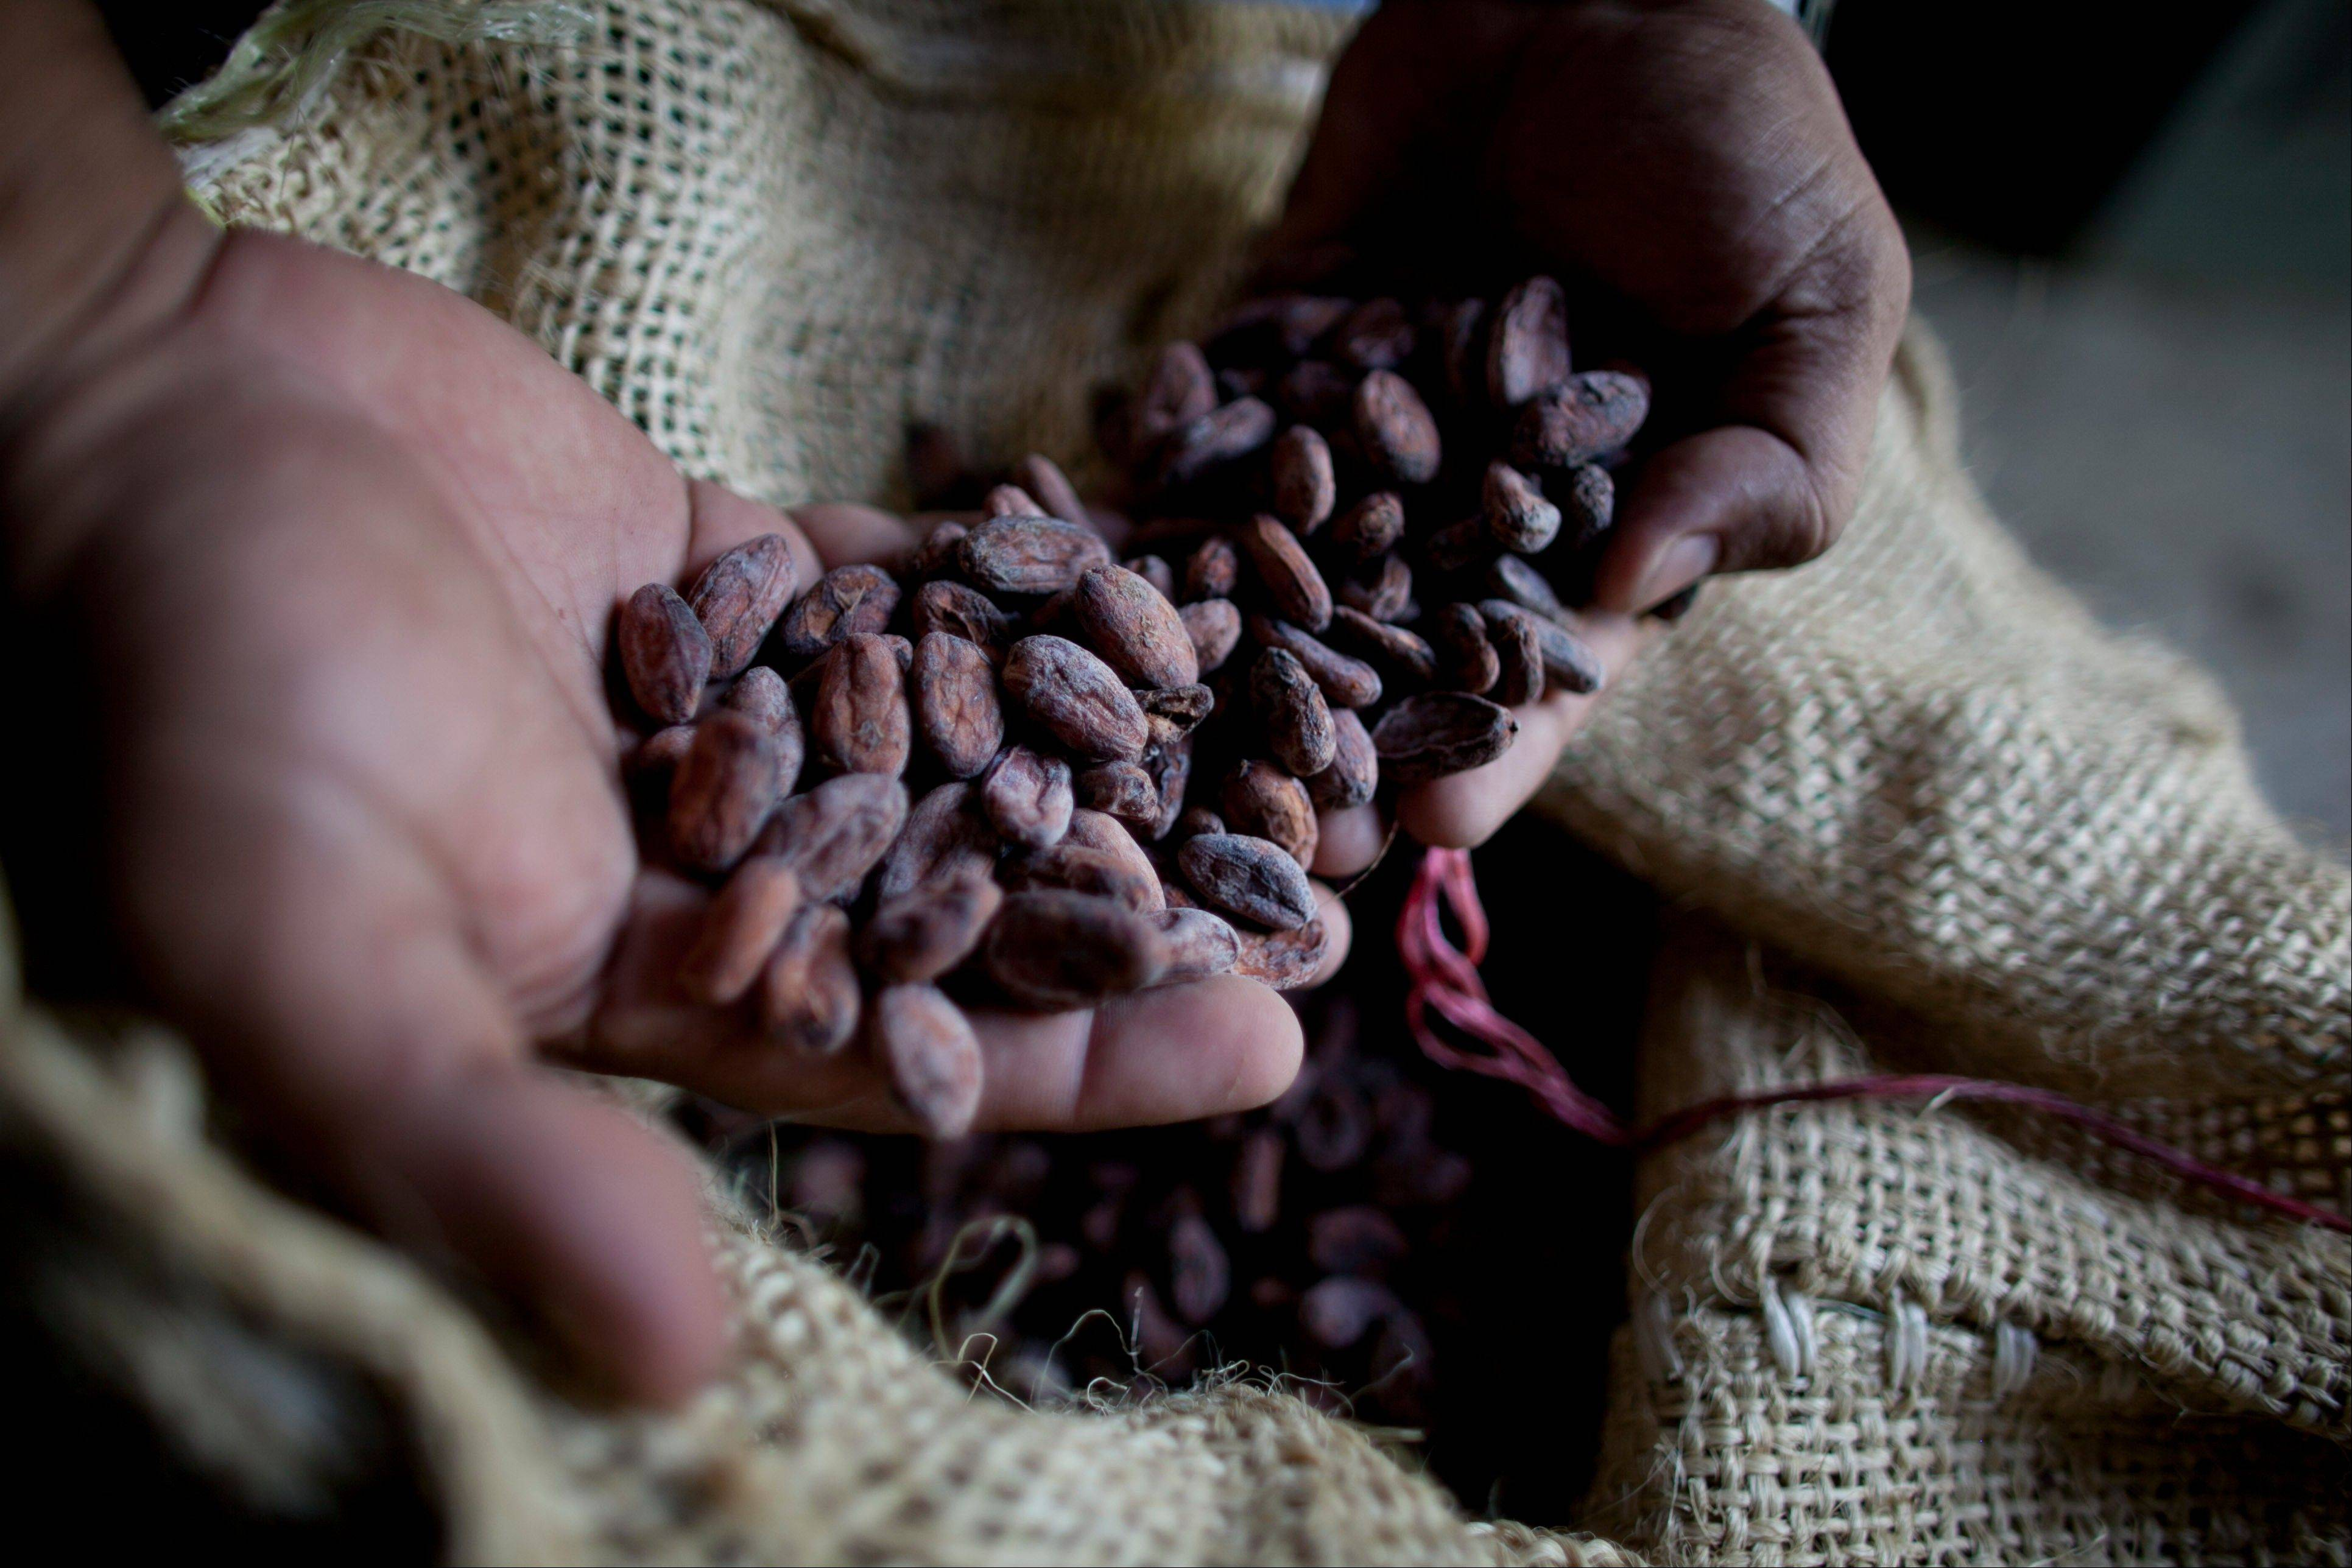 A worker shows a handful of dried cacao seeds at a cacao plantation in Cano Rico, Venezuela.